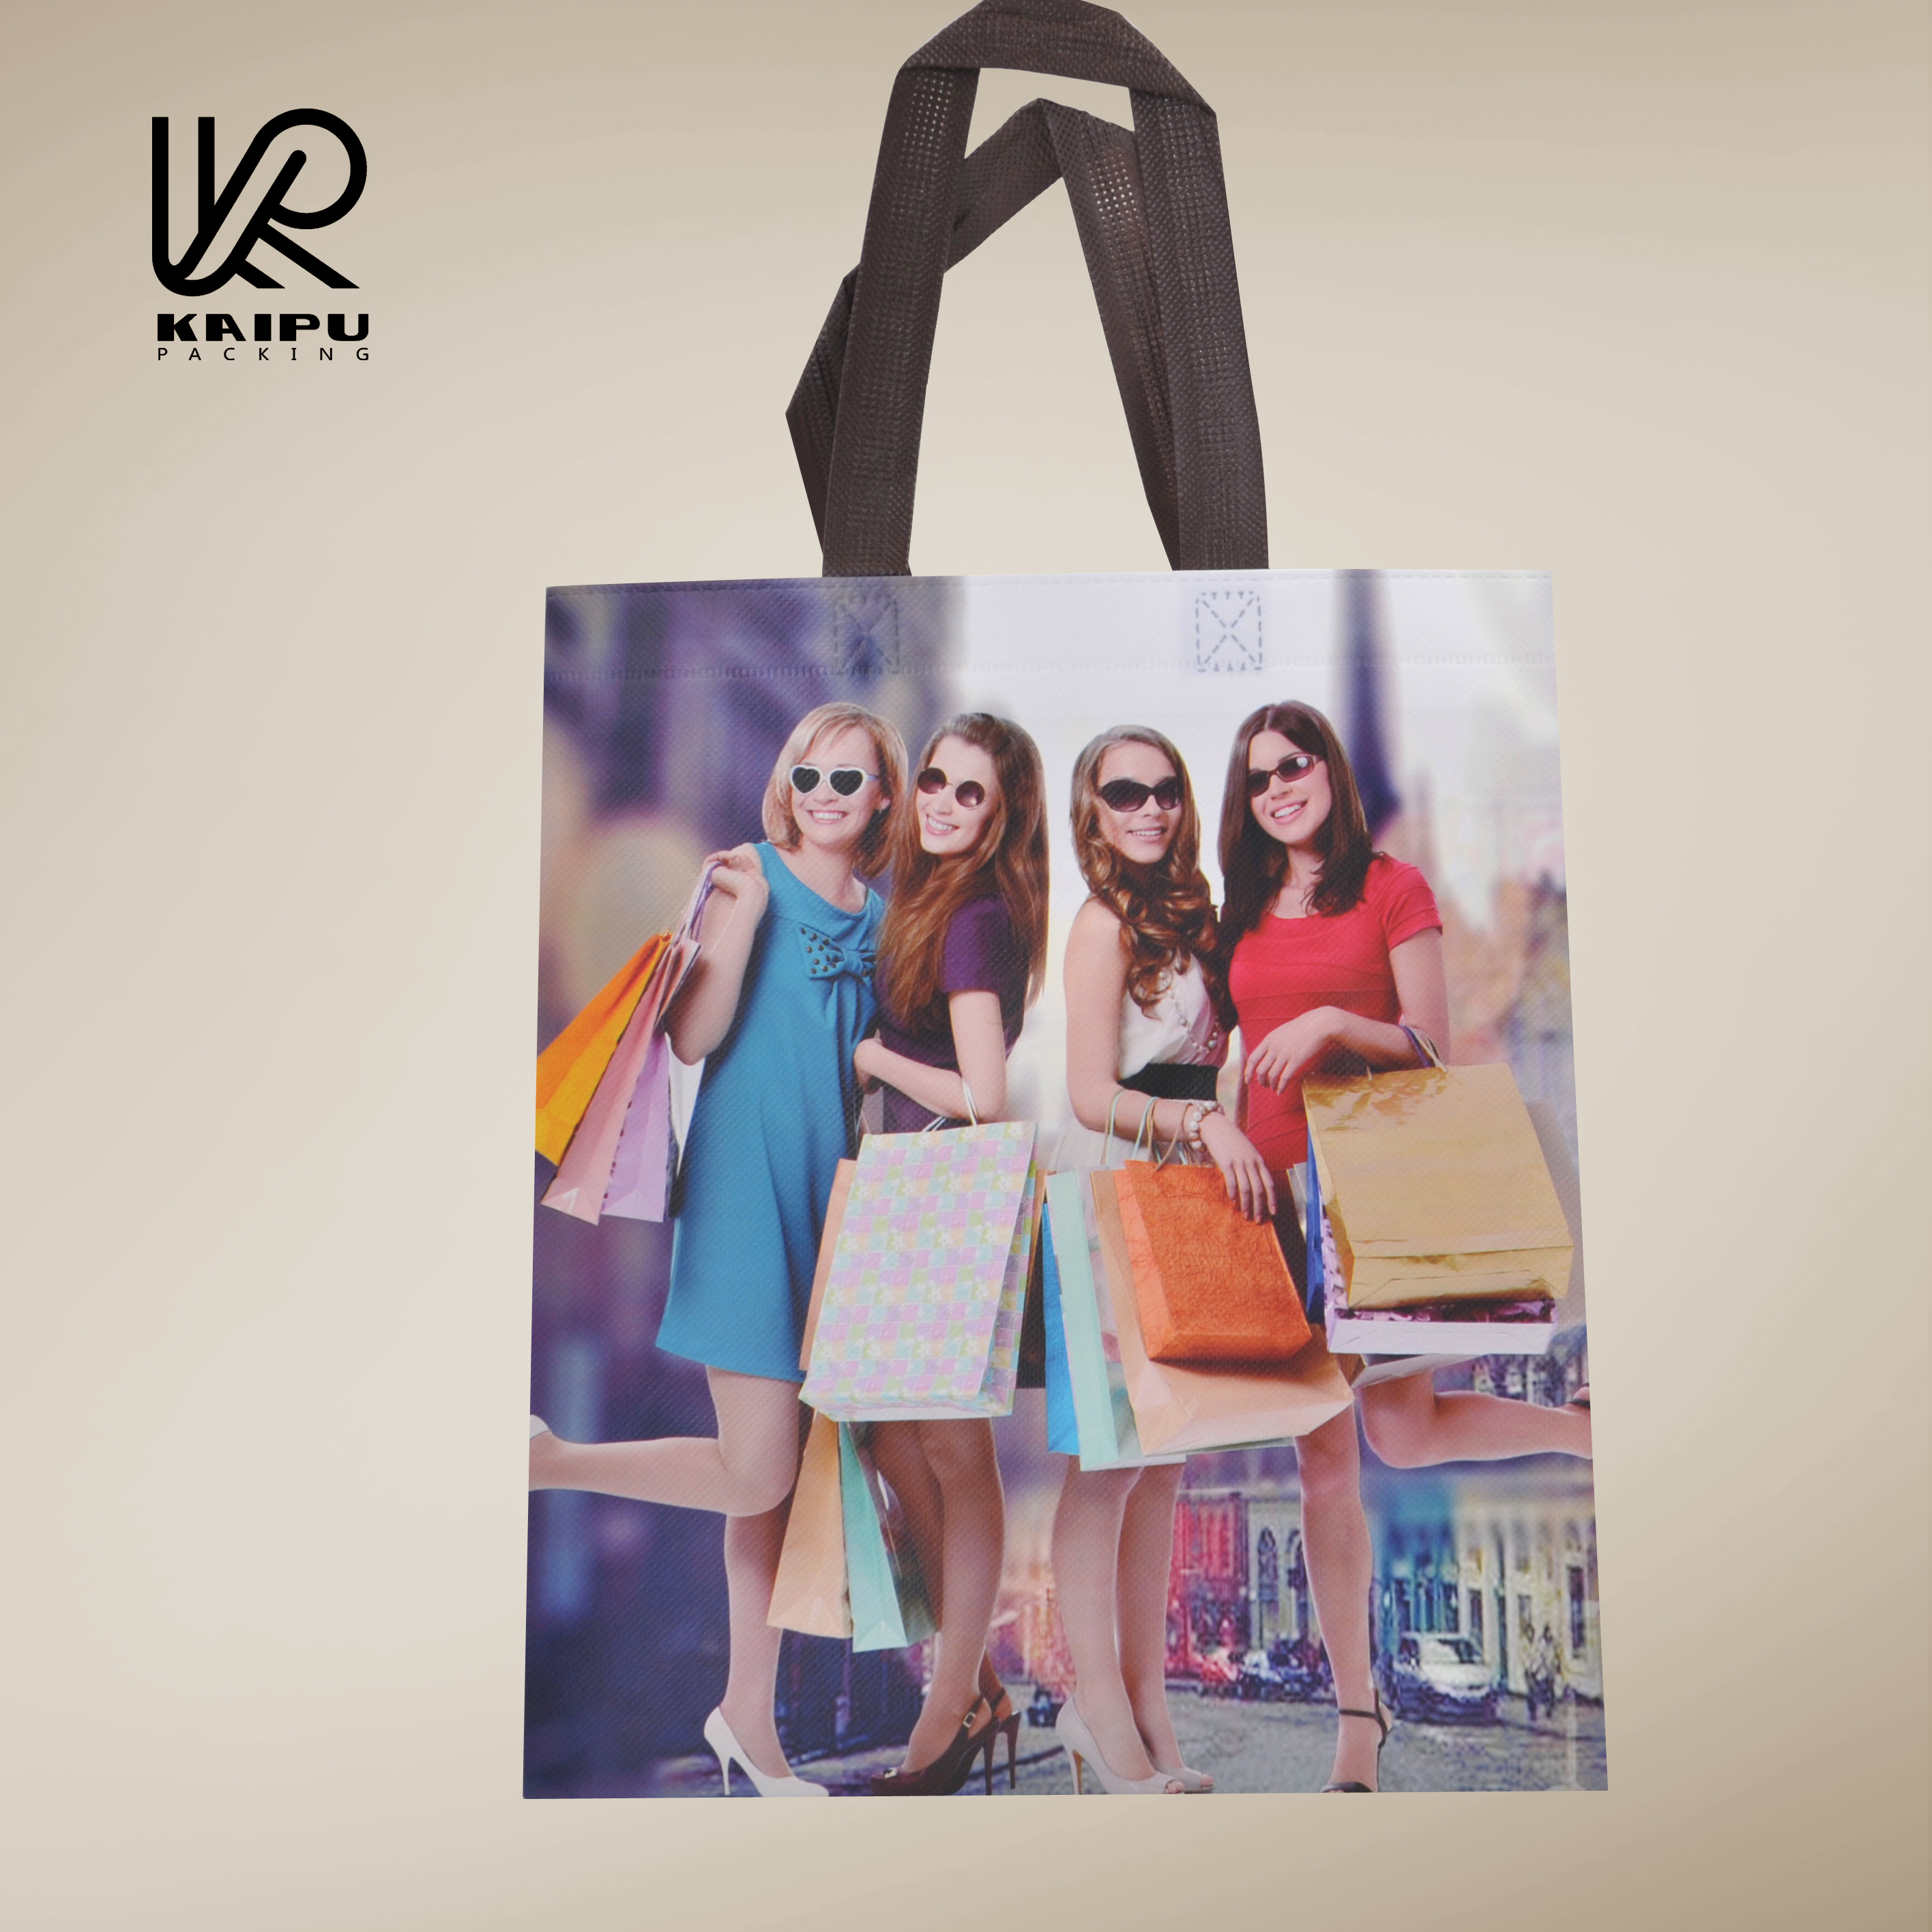 New product 2016 non-woven lady tote shopping bags full color printed manufactured in China